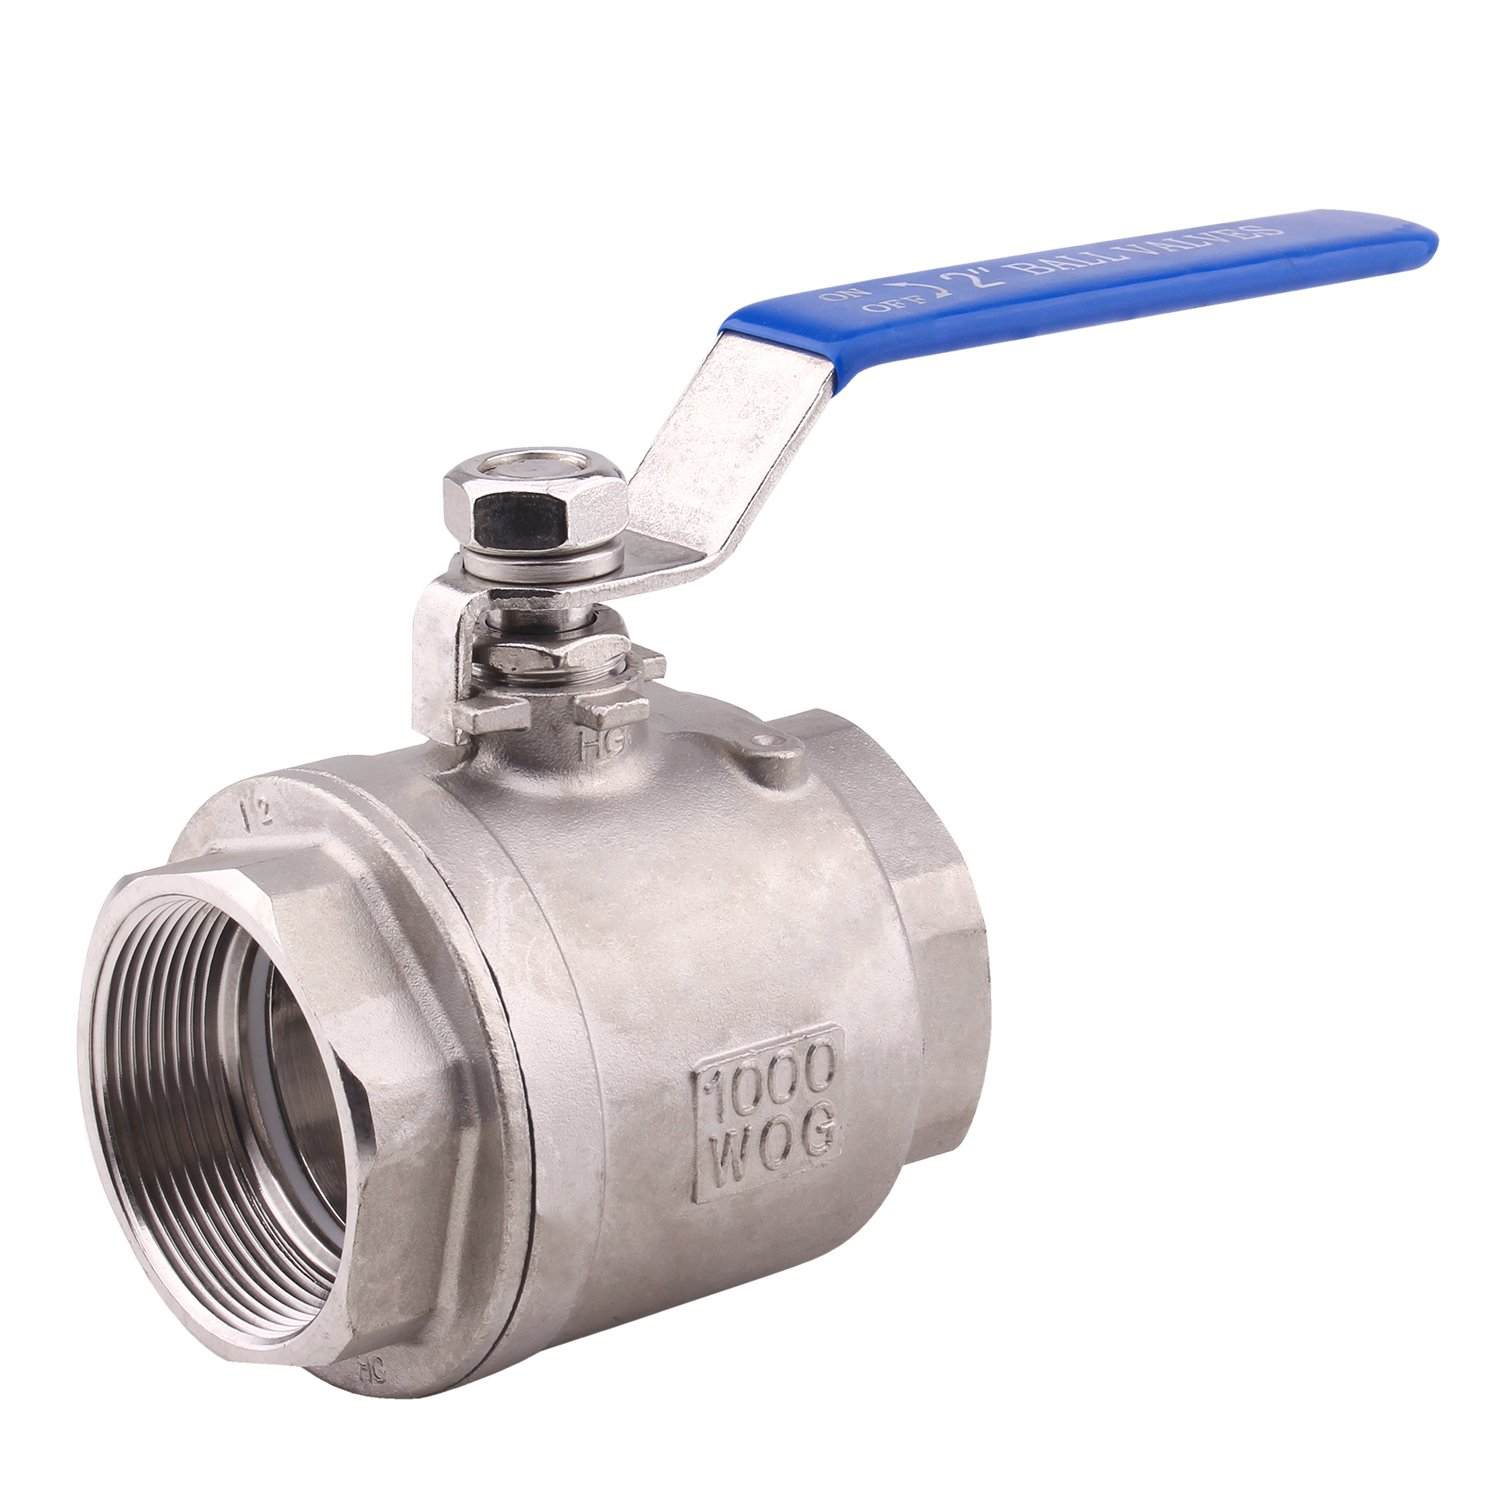 Dernord Full Port Ball Valve Stainless Steel 304 Heavy Duty for Water, Oil, and Gas with Blue Locking Handles (2'' NPT)